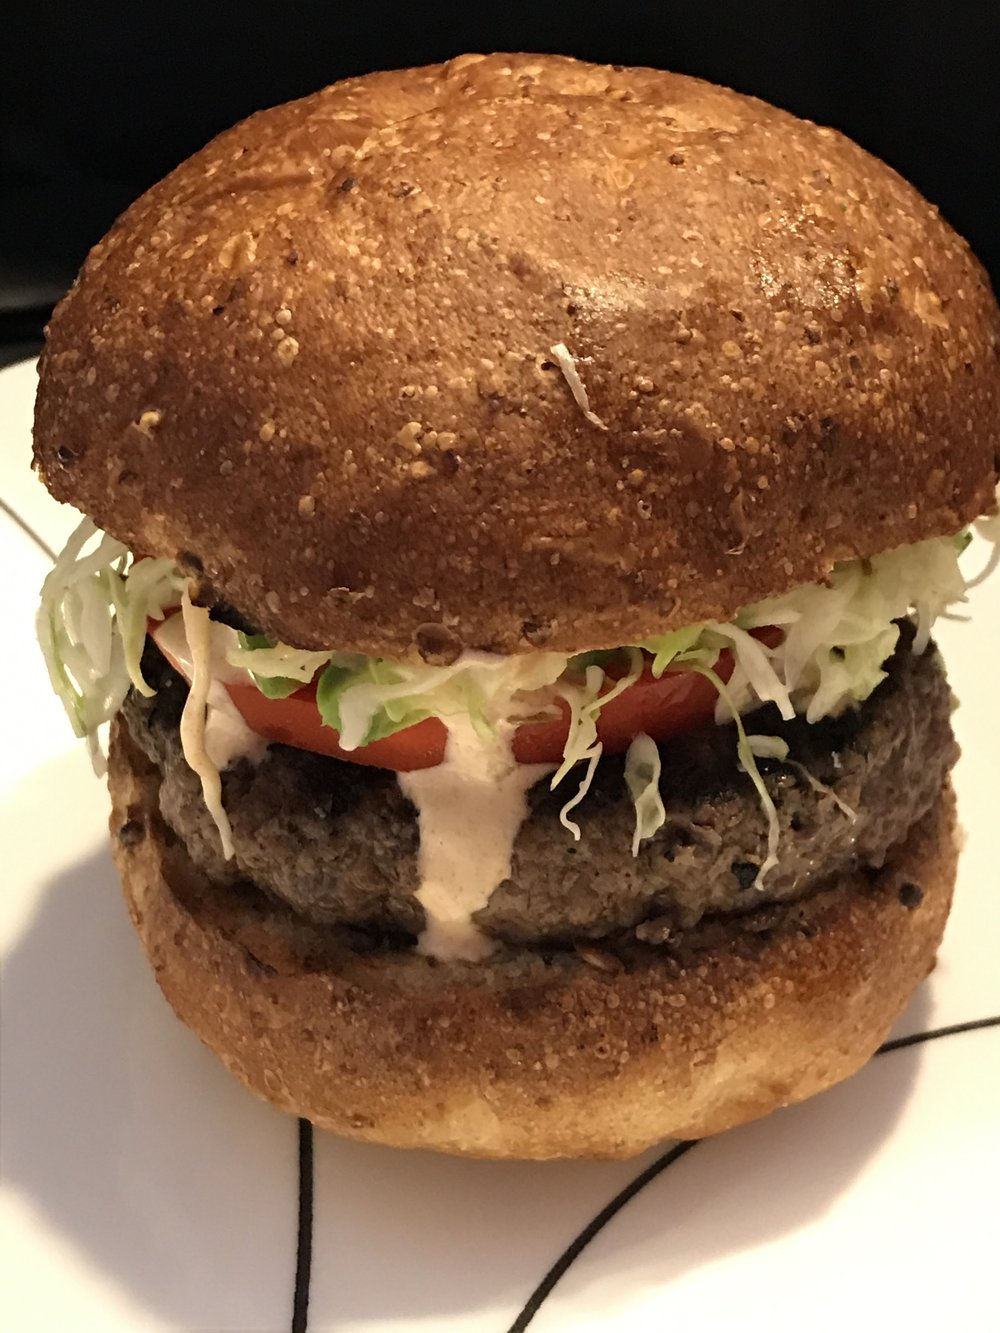 Organic Hamburger with Wilted Slaw and Smoked Paprika Aioli